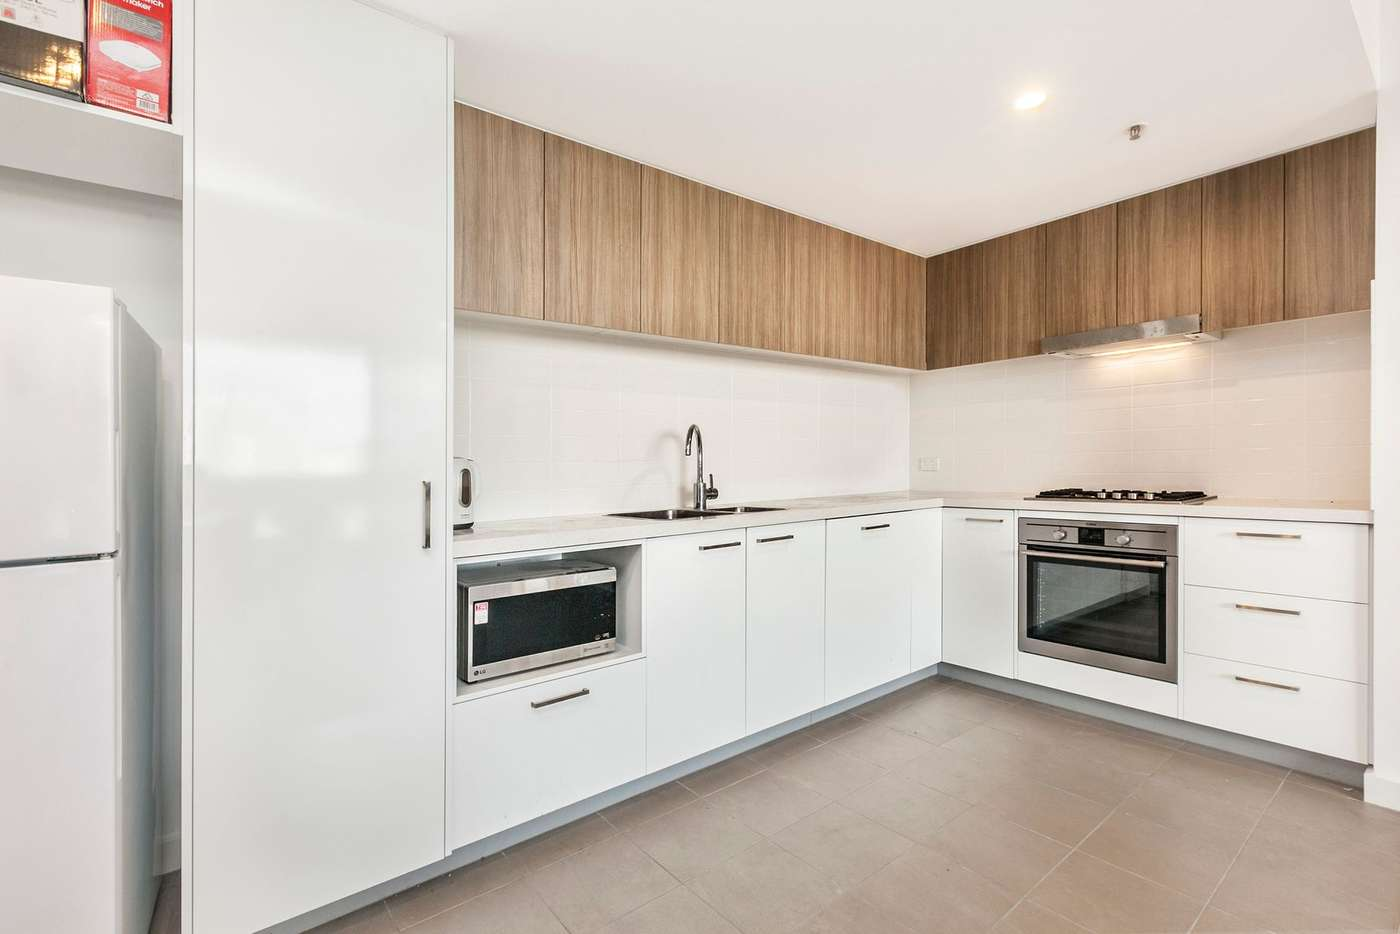 Main view of Homely apartment listing, 1701/152-160 Grote Street, Adelaide SA 5000